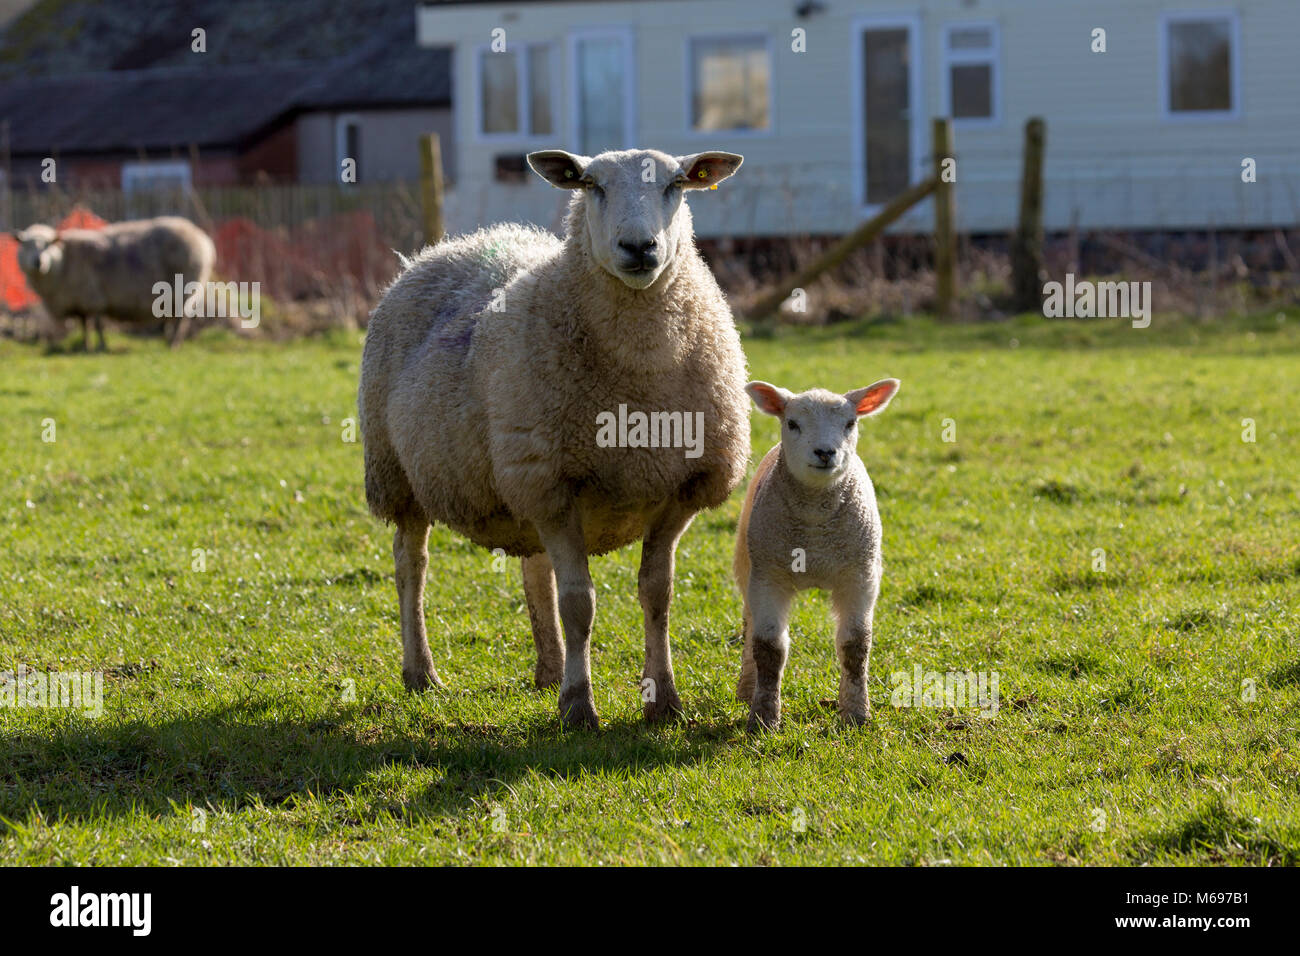 Female sheep / ewe with its lamb on small holding, staring - Stock Image